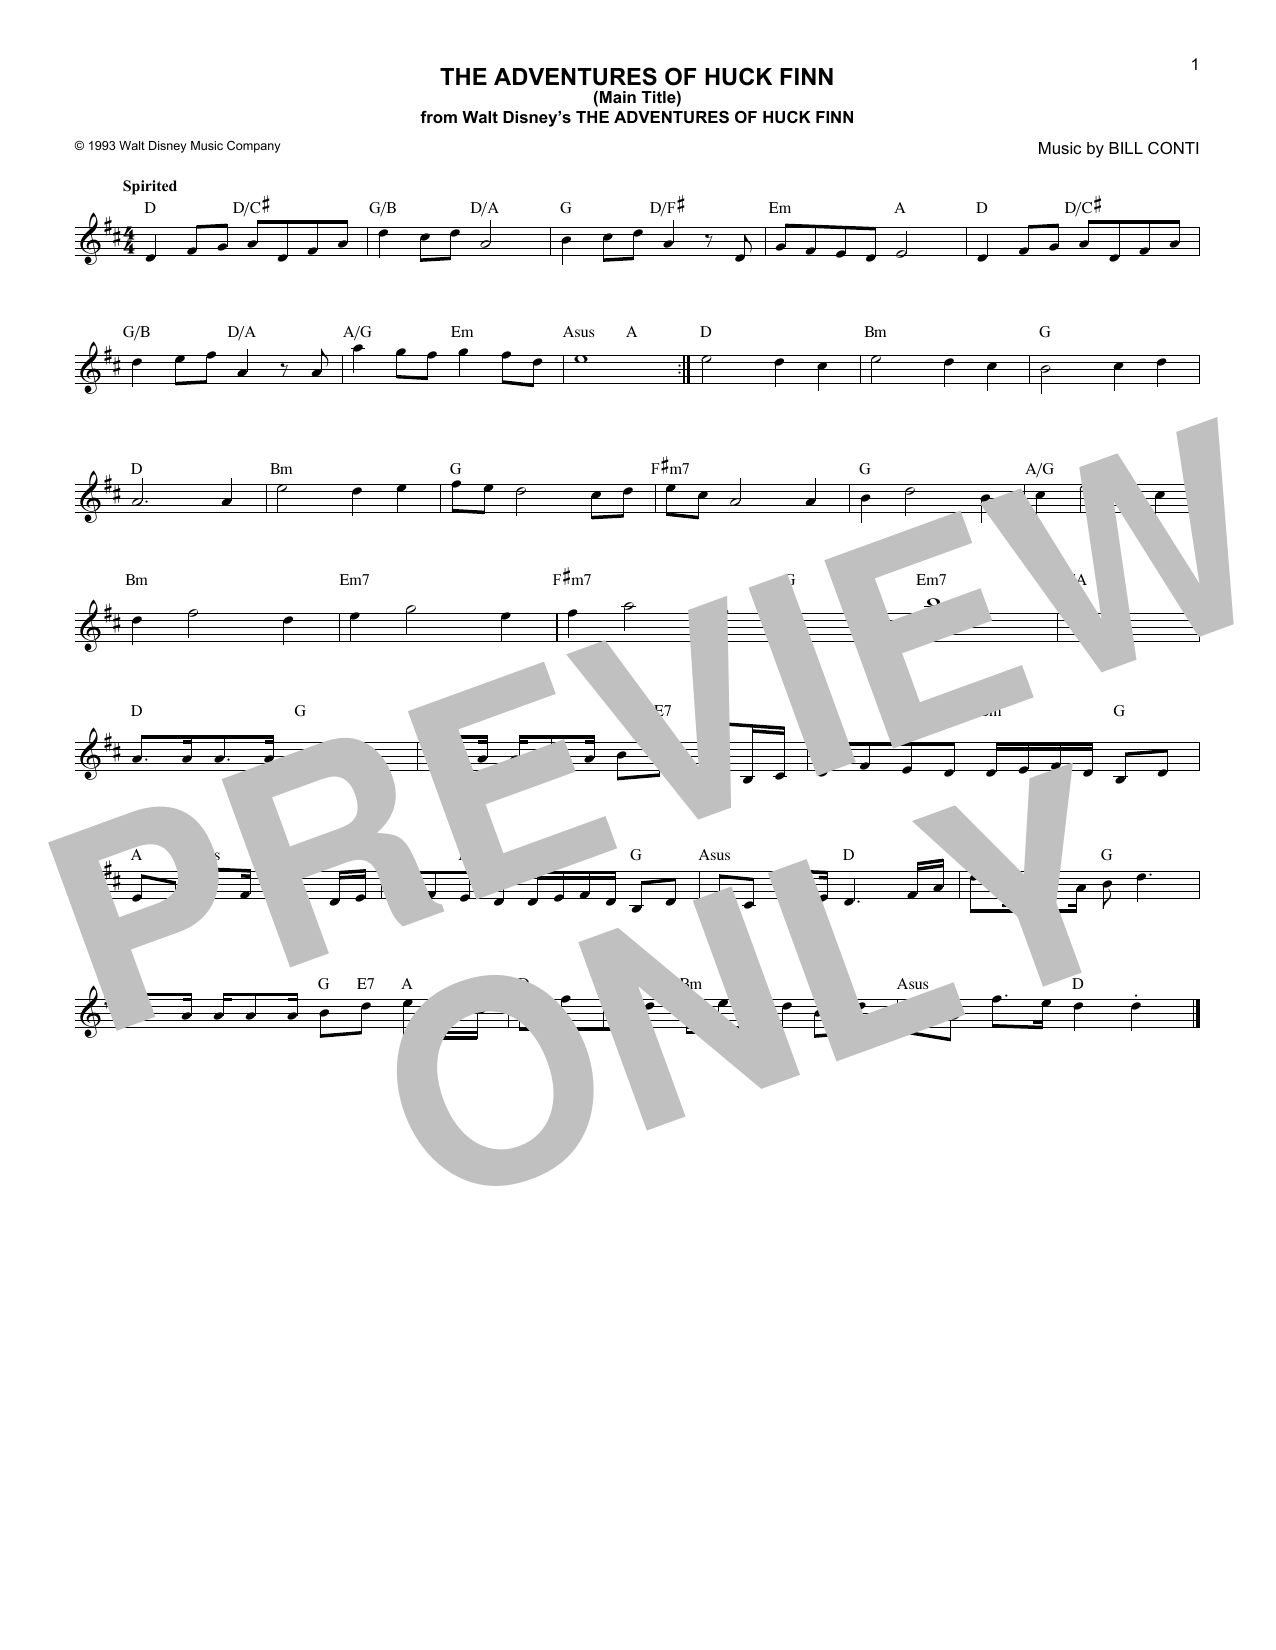 The Adventures Of Huck Finn (Main Title) Sheet Music